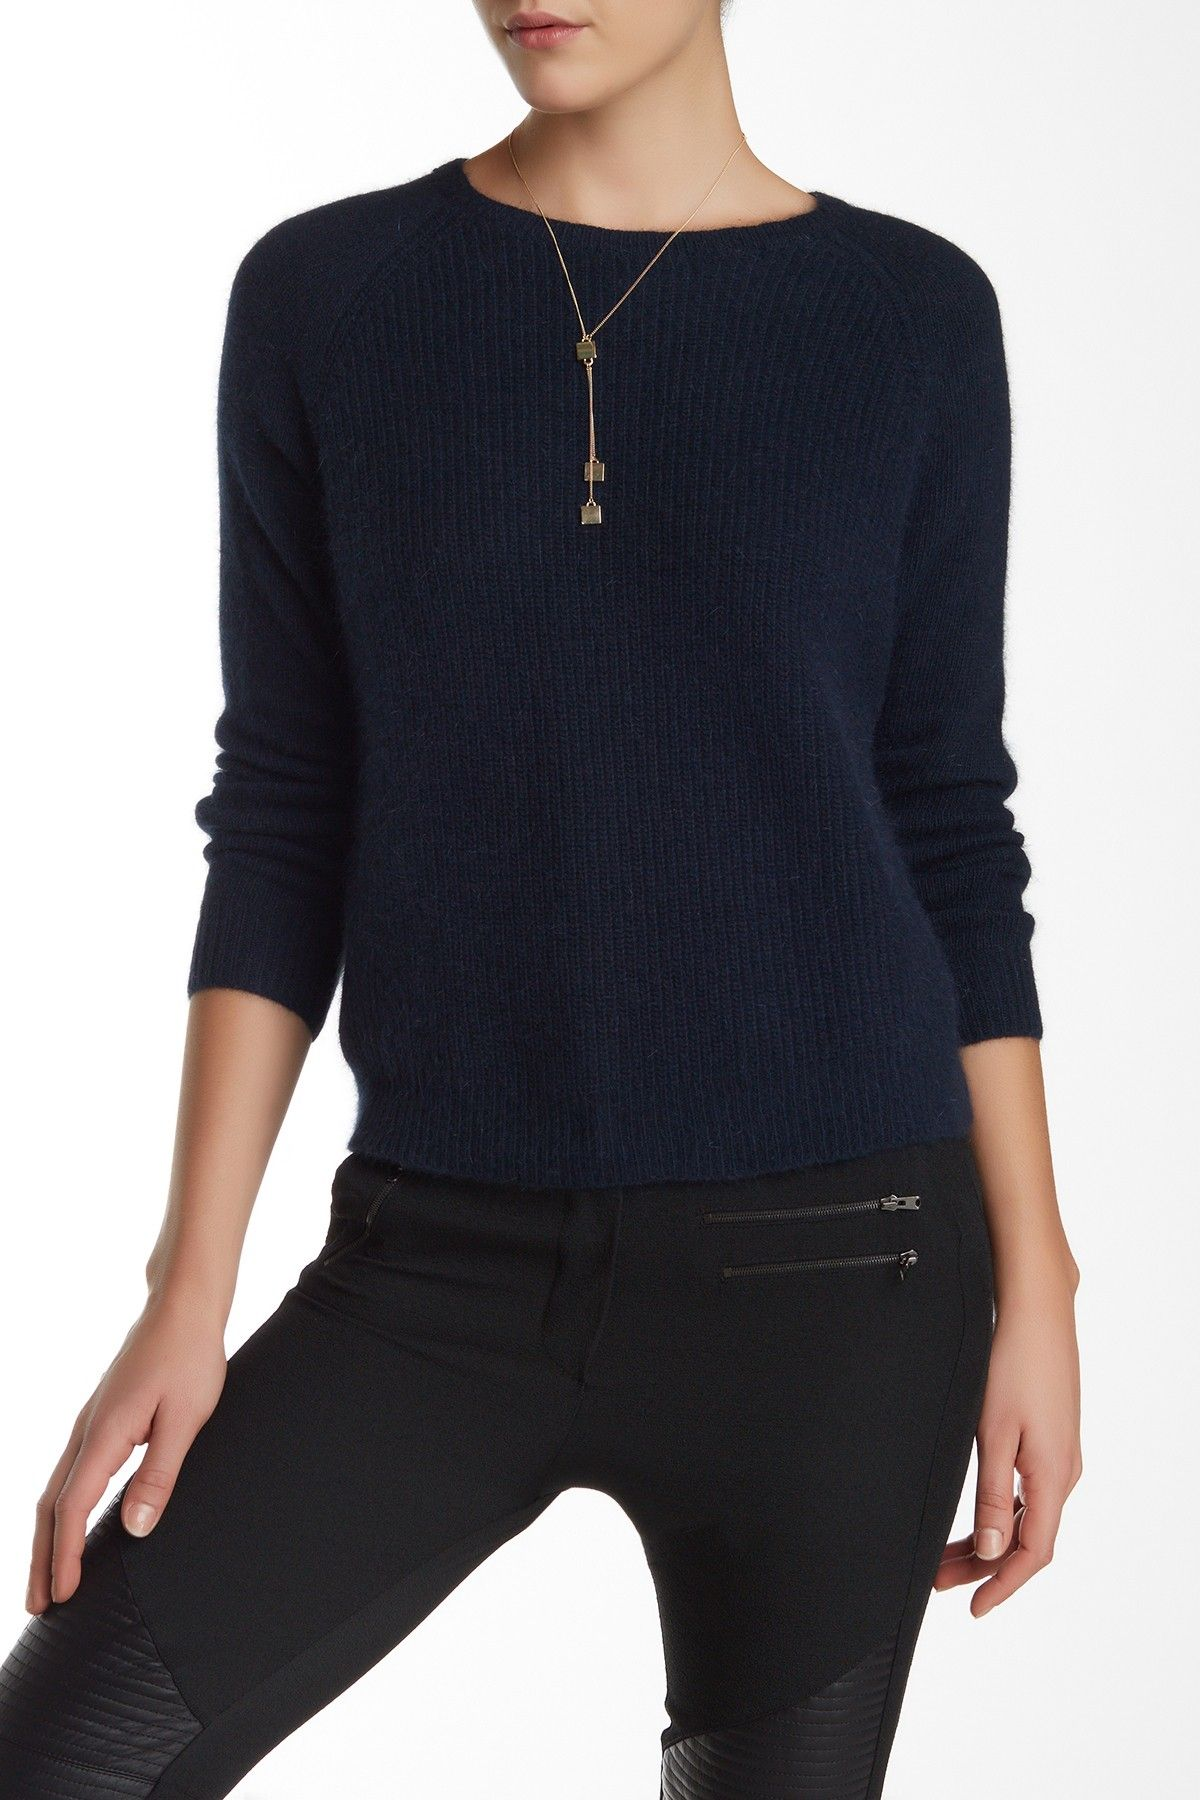 Angora Blend Sweater by The Kooples on @nordstrom_rack